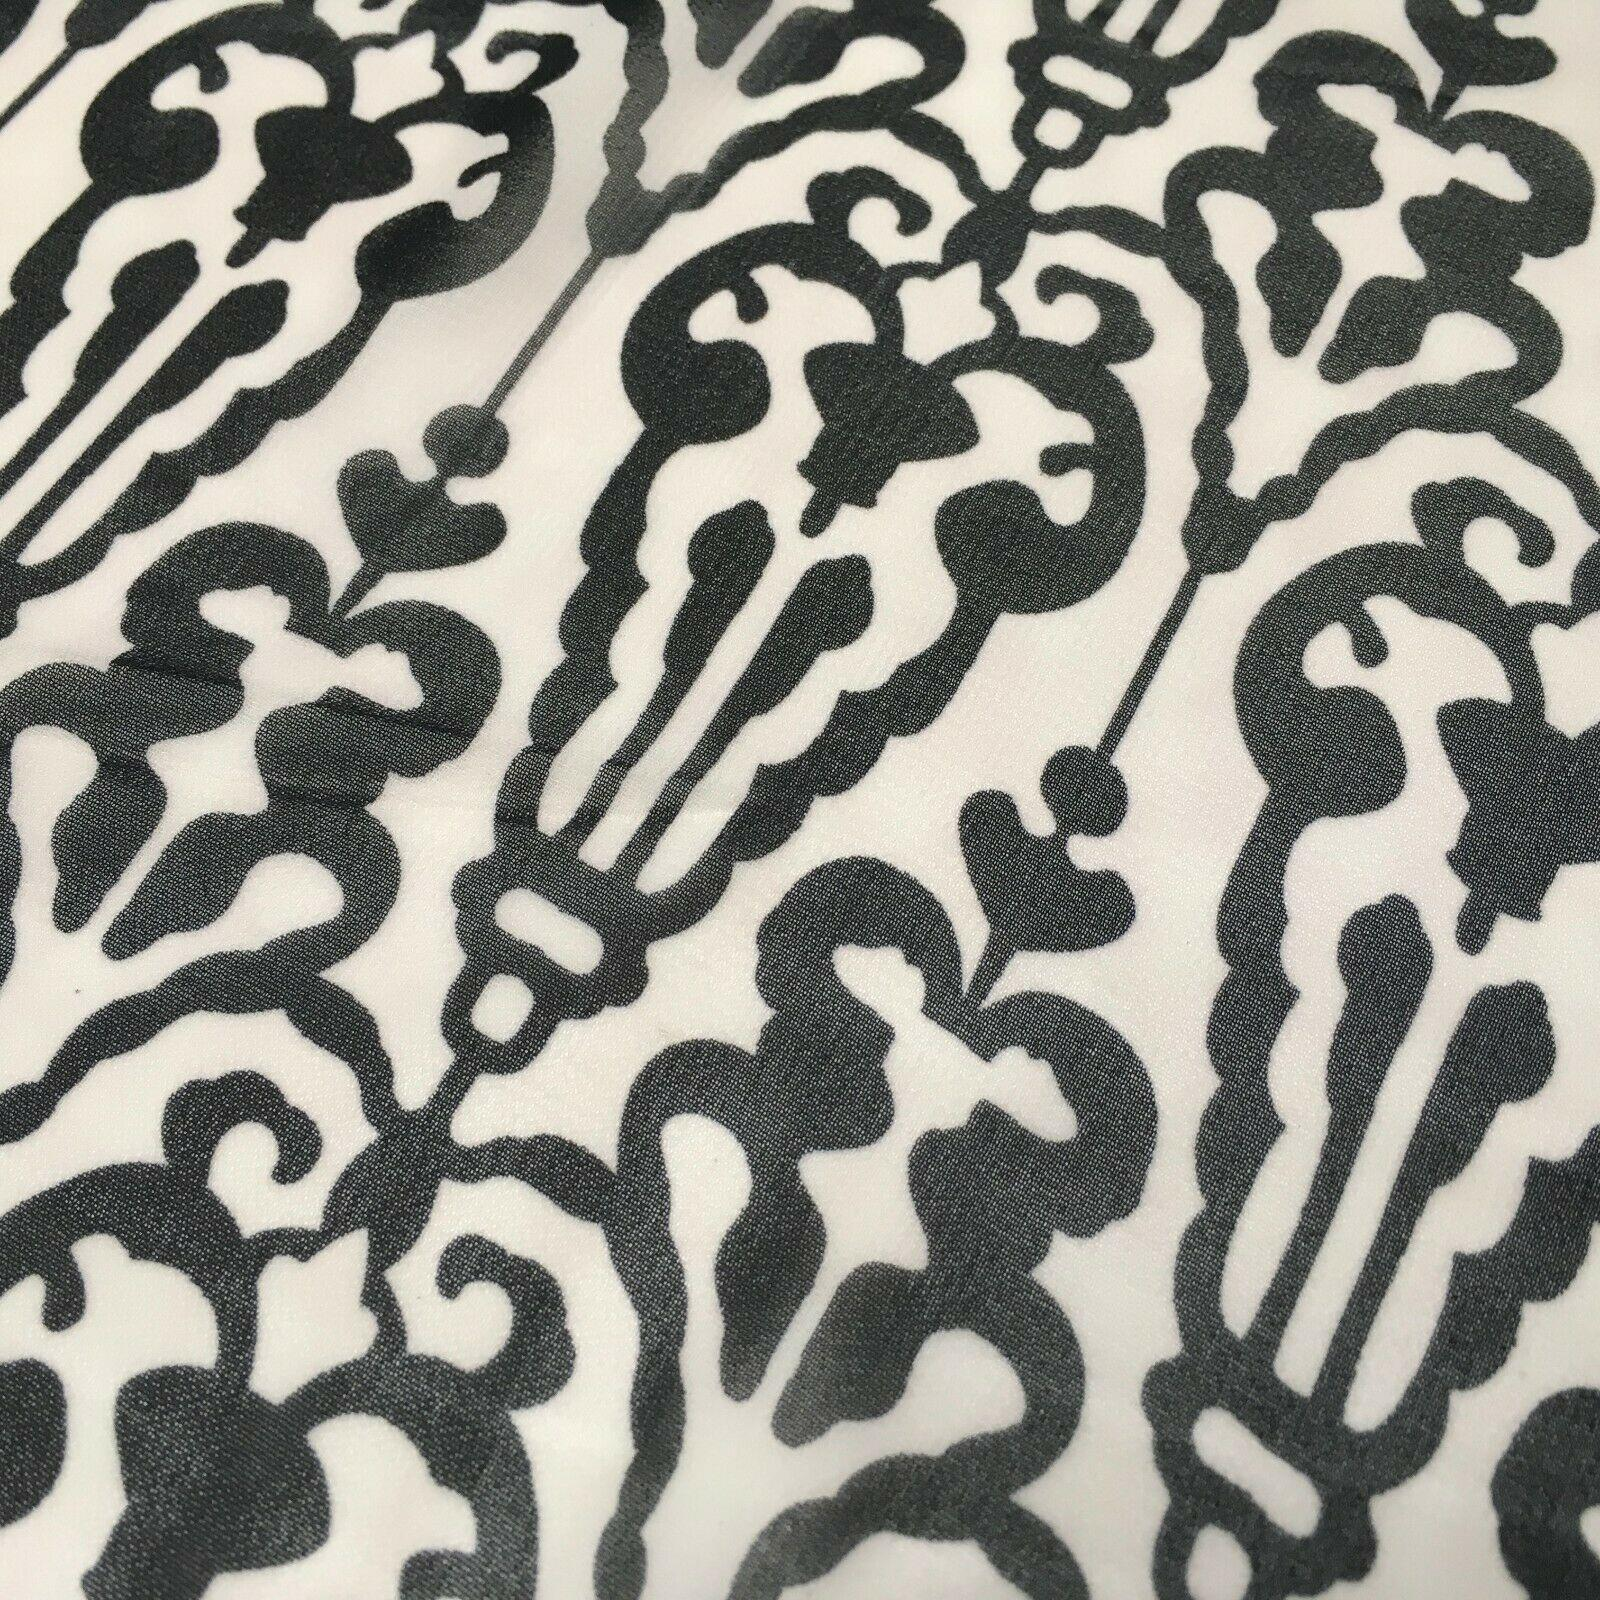 Black and White Ornamental Printed Crepe chiffon Dress Fabric 150 cm MK1190-32